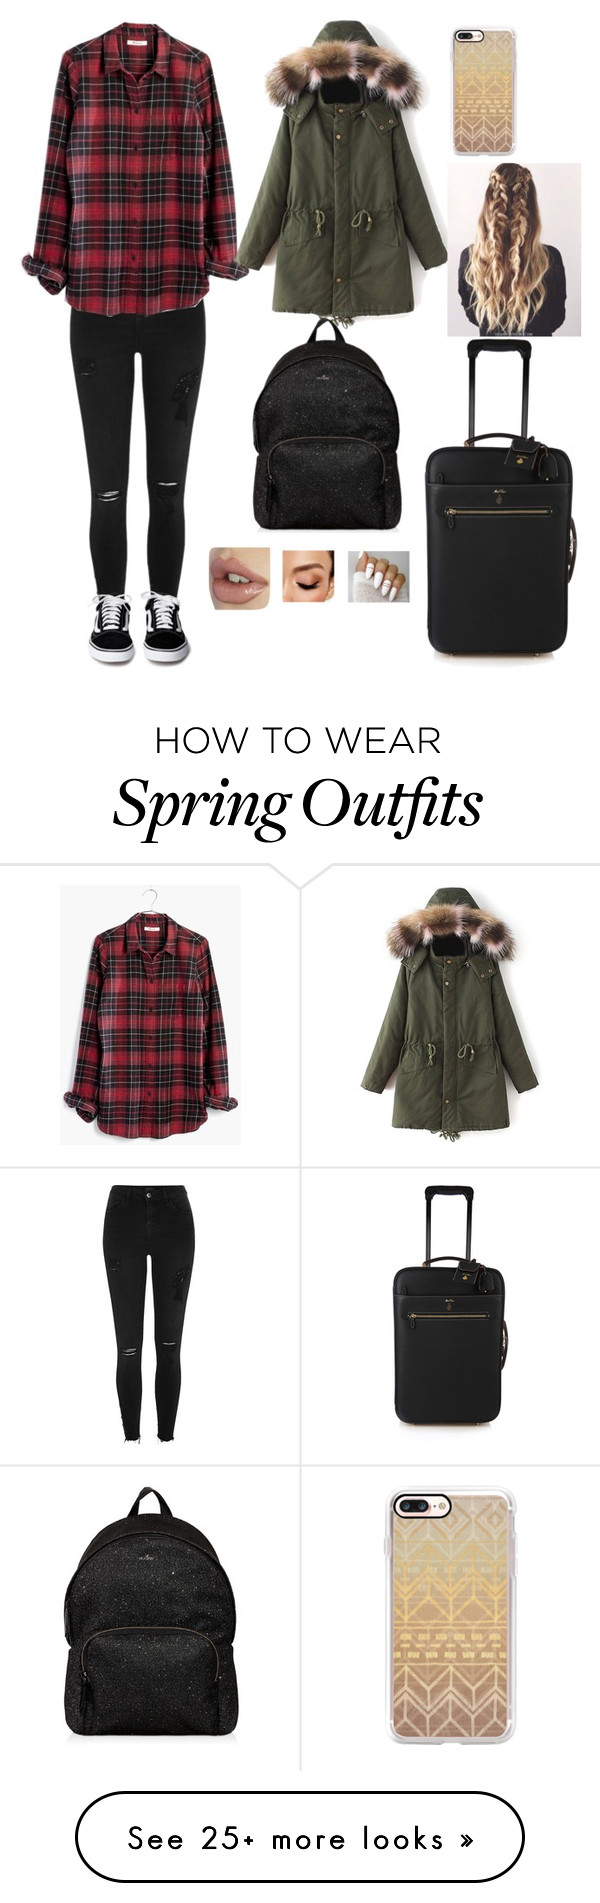 """""""Random Outfit #42"""" by x1dlover4everx on Polyvore featuring River Island, Madewell, Hogan, Avon, Casetify and Mark Cross"""